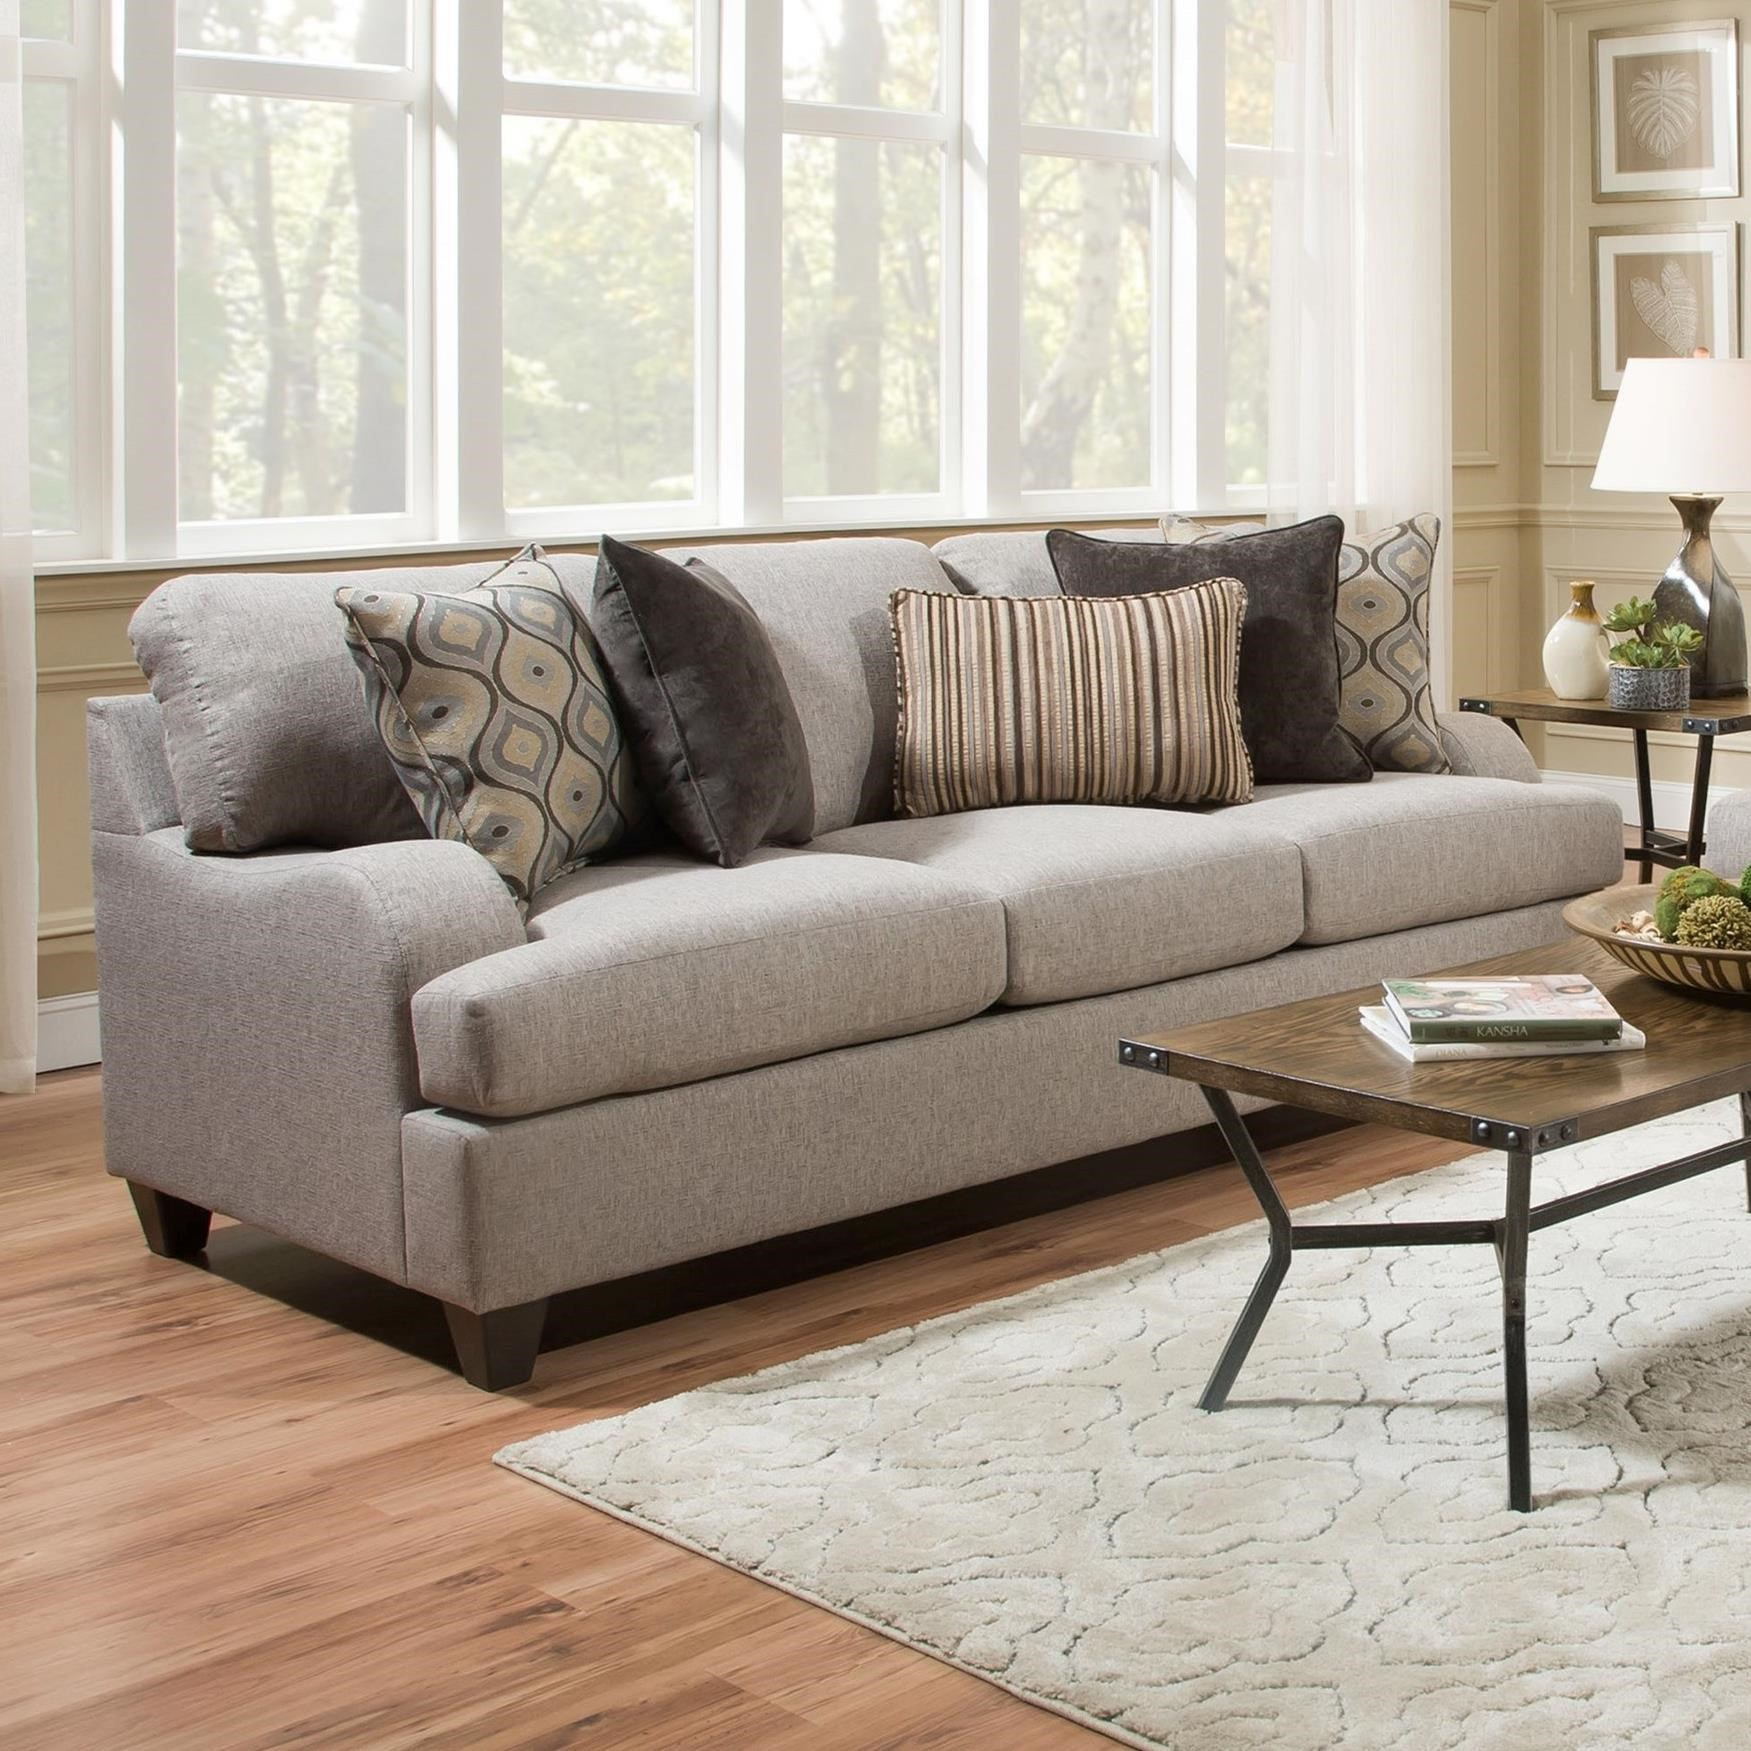 United Furniture Industries 4002 Transitional Sofa - Item Number: 4002SOFA-LenoxSterling